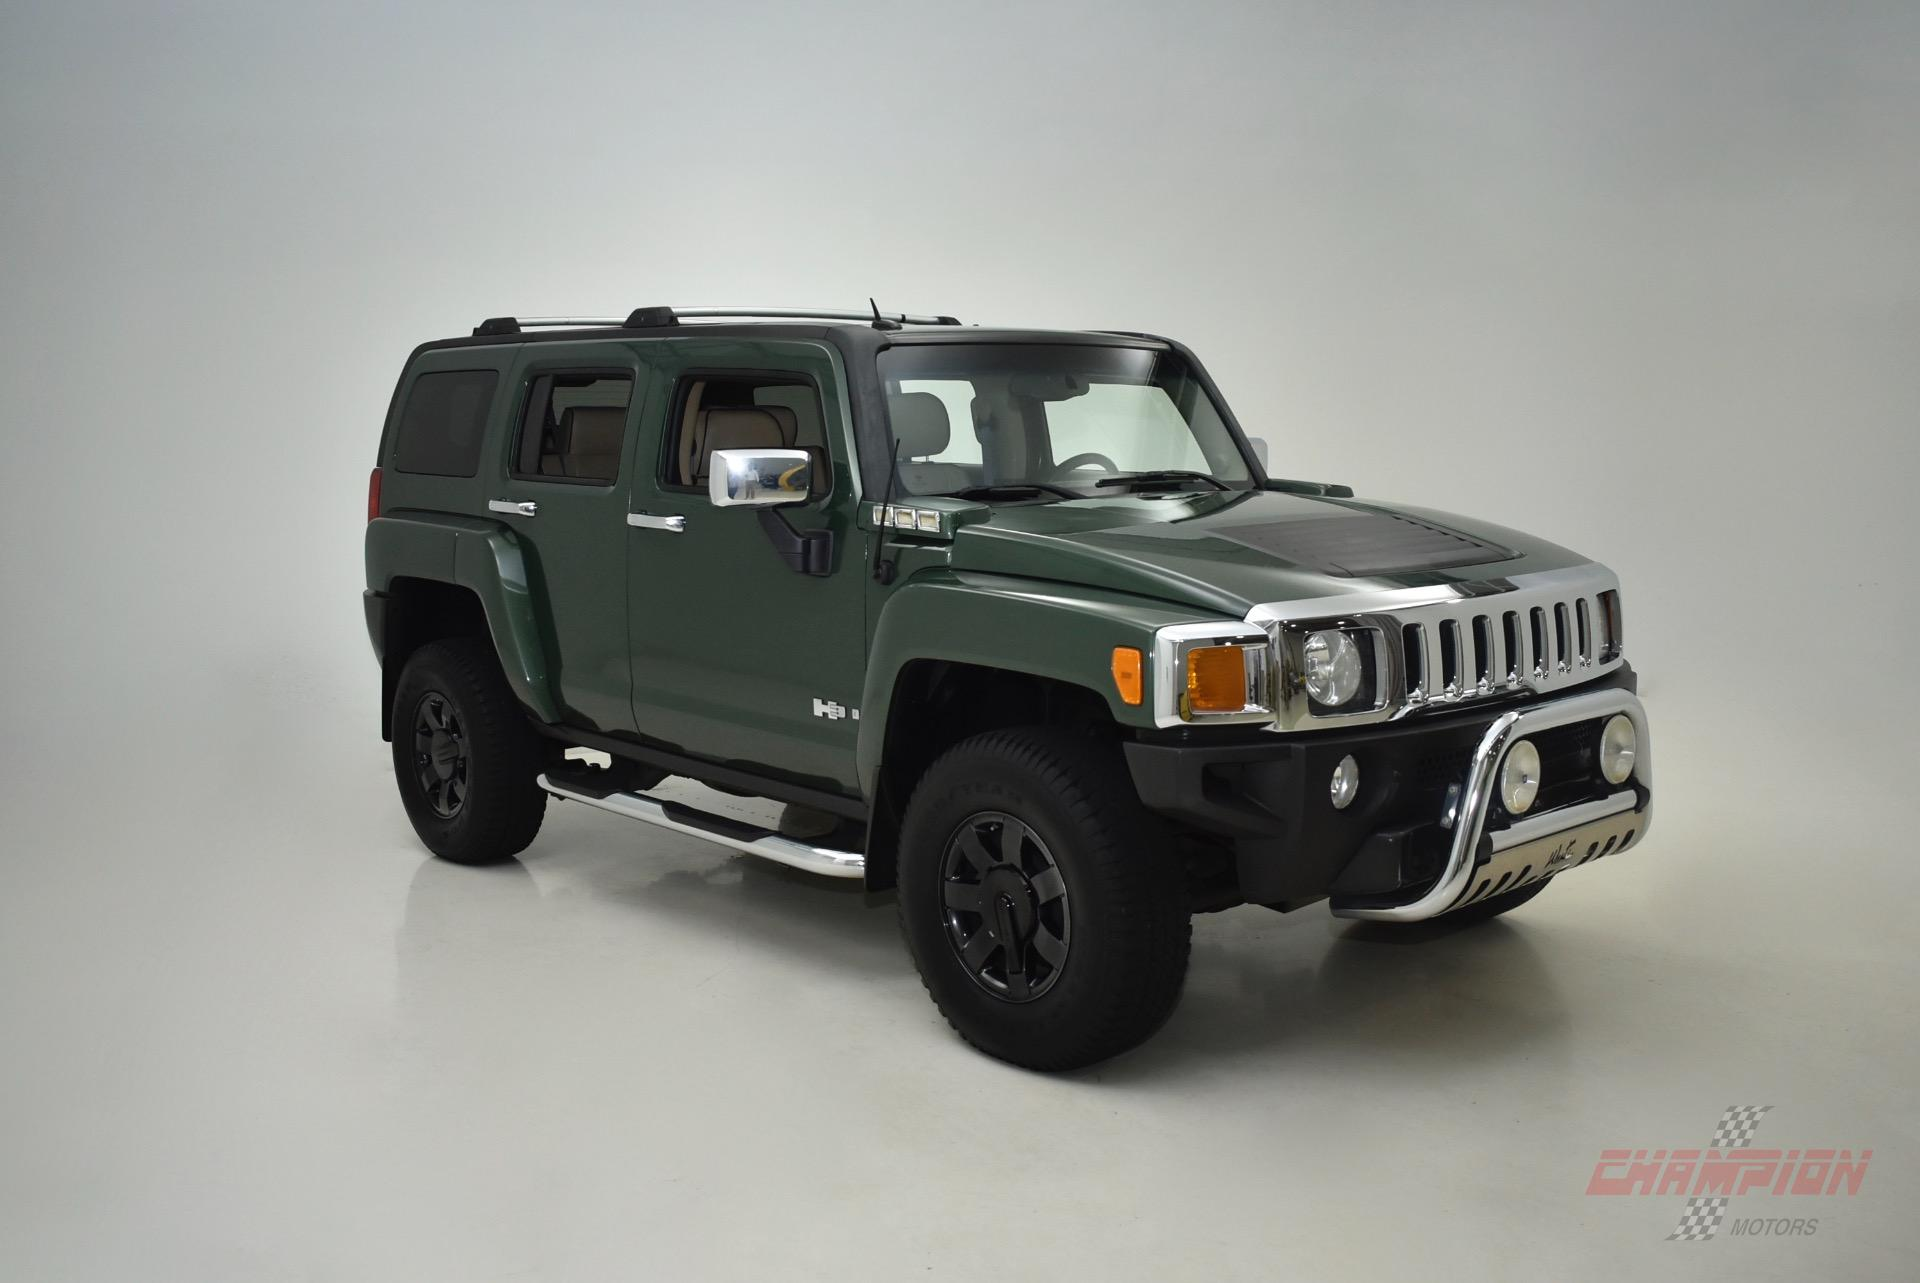 2006 HUMMER H3 Exotic and Classic Car Dealership specializing in